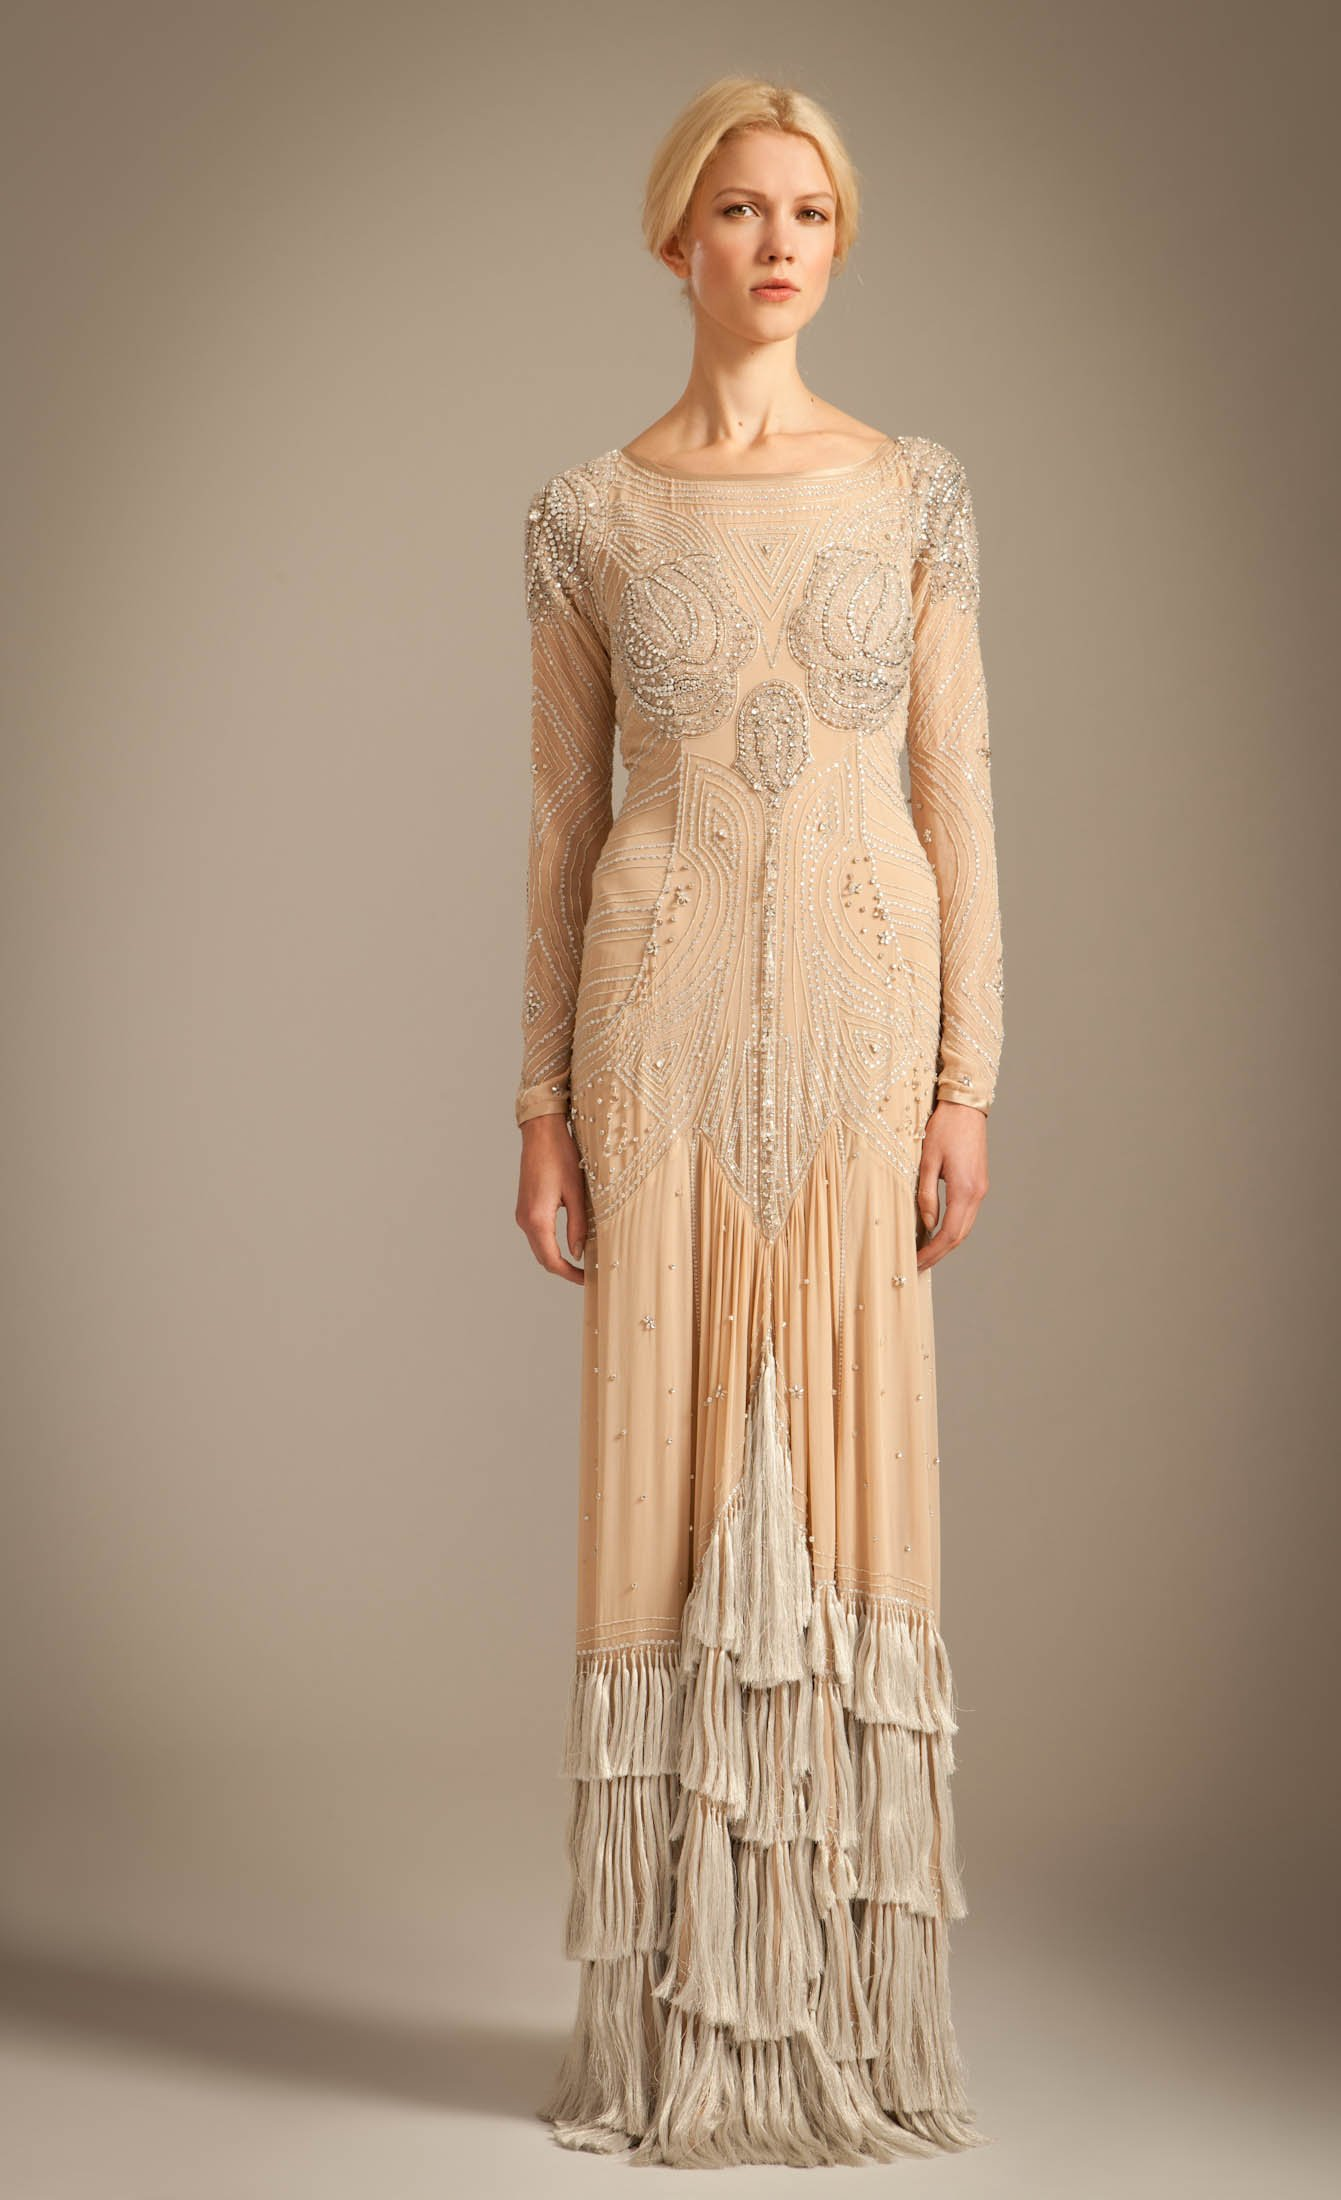 Lyst - Temperley London Long Silvia Tattoo Dress in Natural